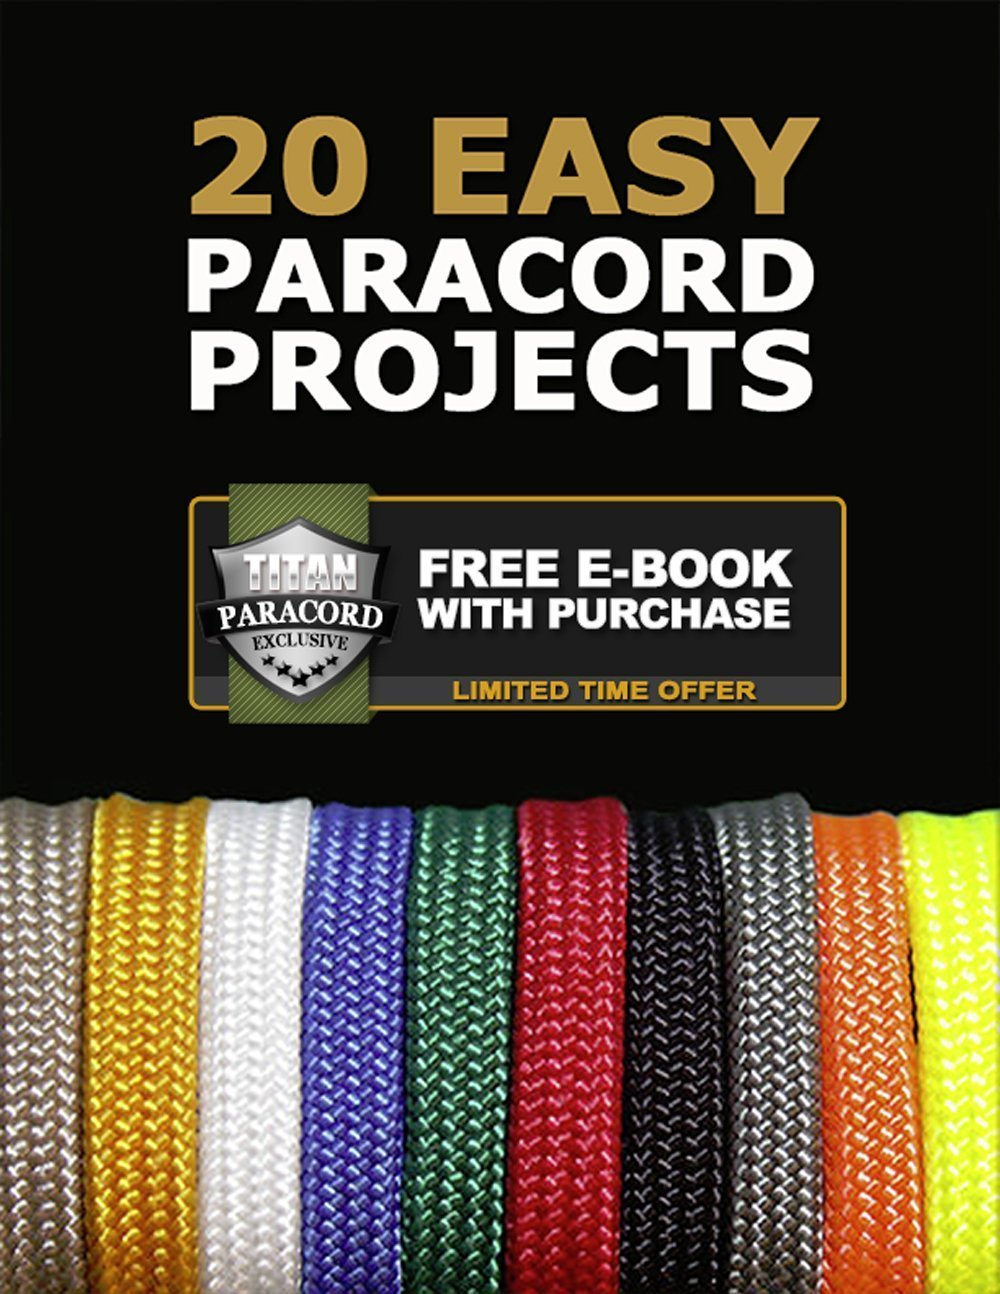 Titan SurvivorCord | Reflective Orange | 103 Feet | Patented Military Type III 550 Paracord/Parachute Cord (3/16'' Diameter) with Integrated Fishing Line, Fire-Starter, and Utility Wire. by Titan Paracord (Image #9)